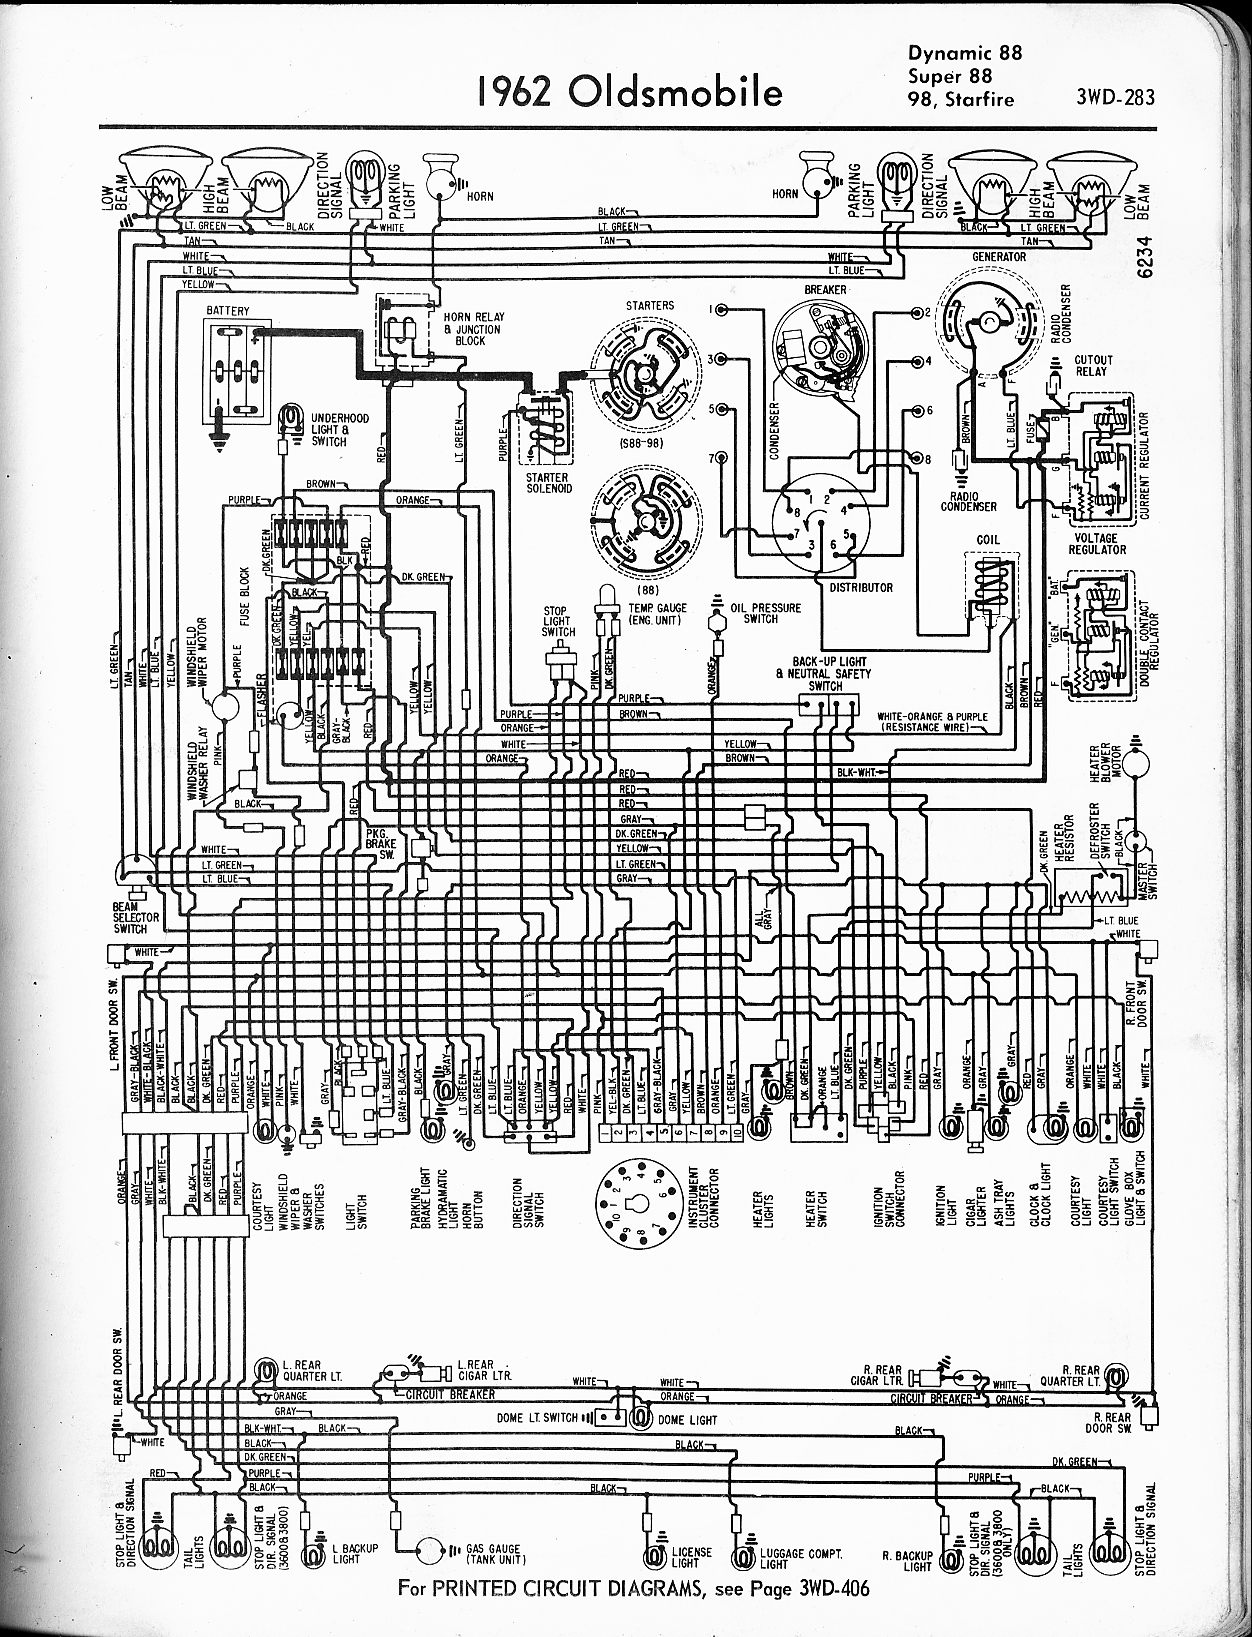 MWire5765 283 oldsmobile wiring diagrams the old car manual project 1967 olds 442 wiring diagram at gsmx.co